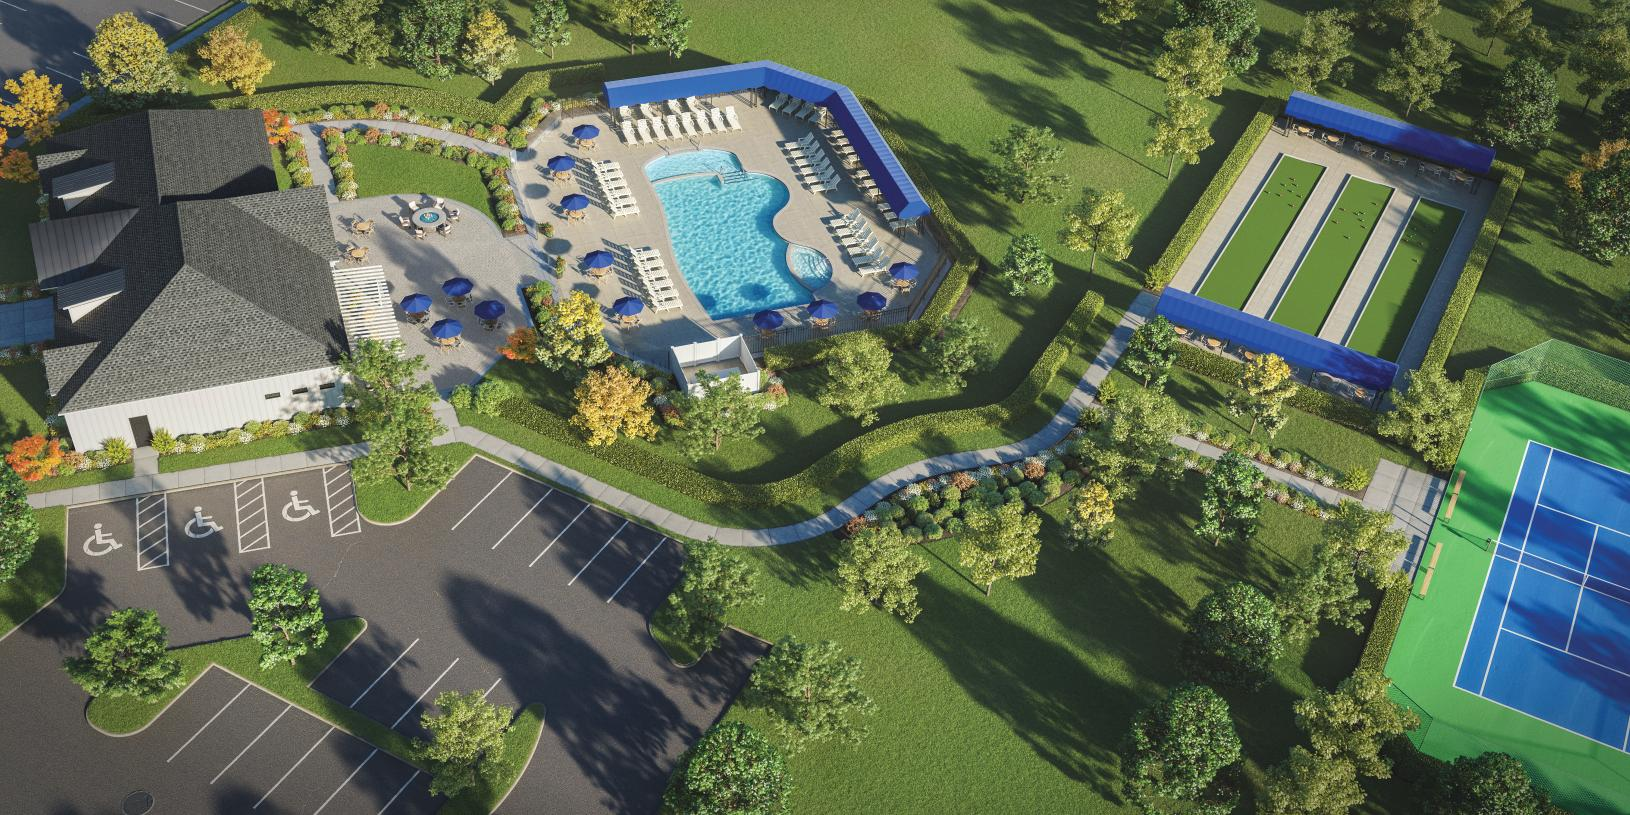 Relax poolside with community on-site amenities